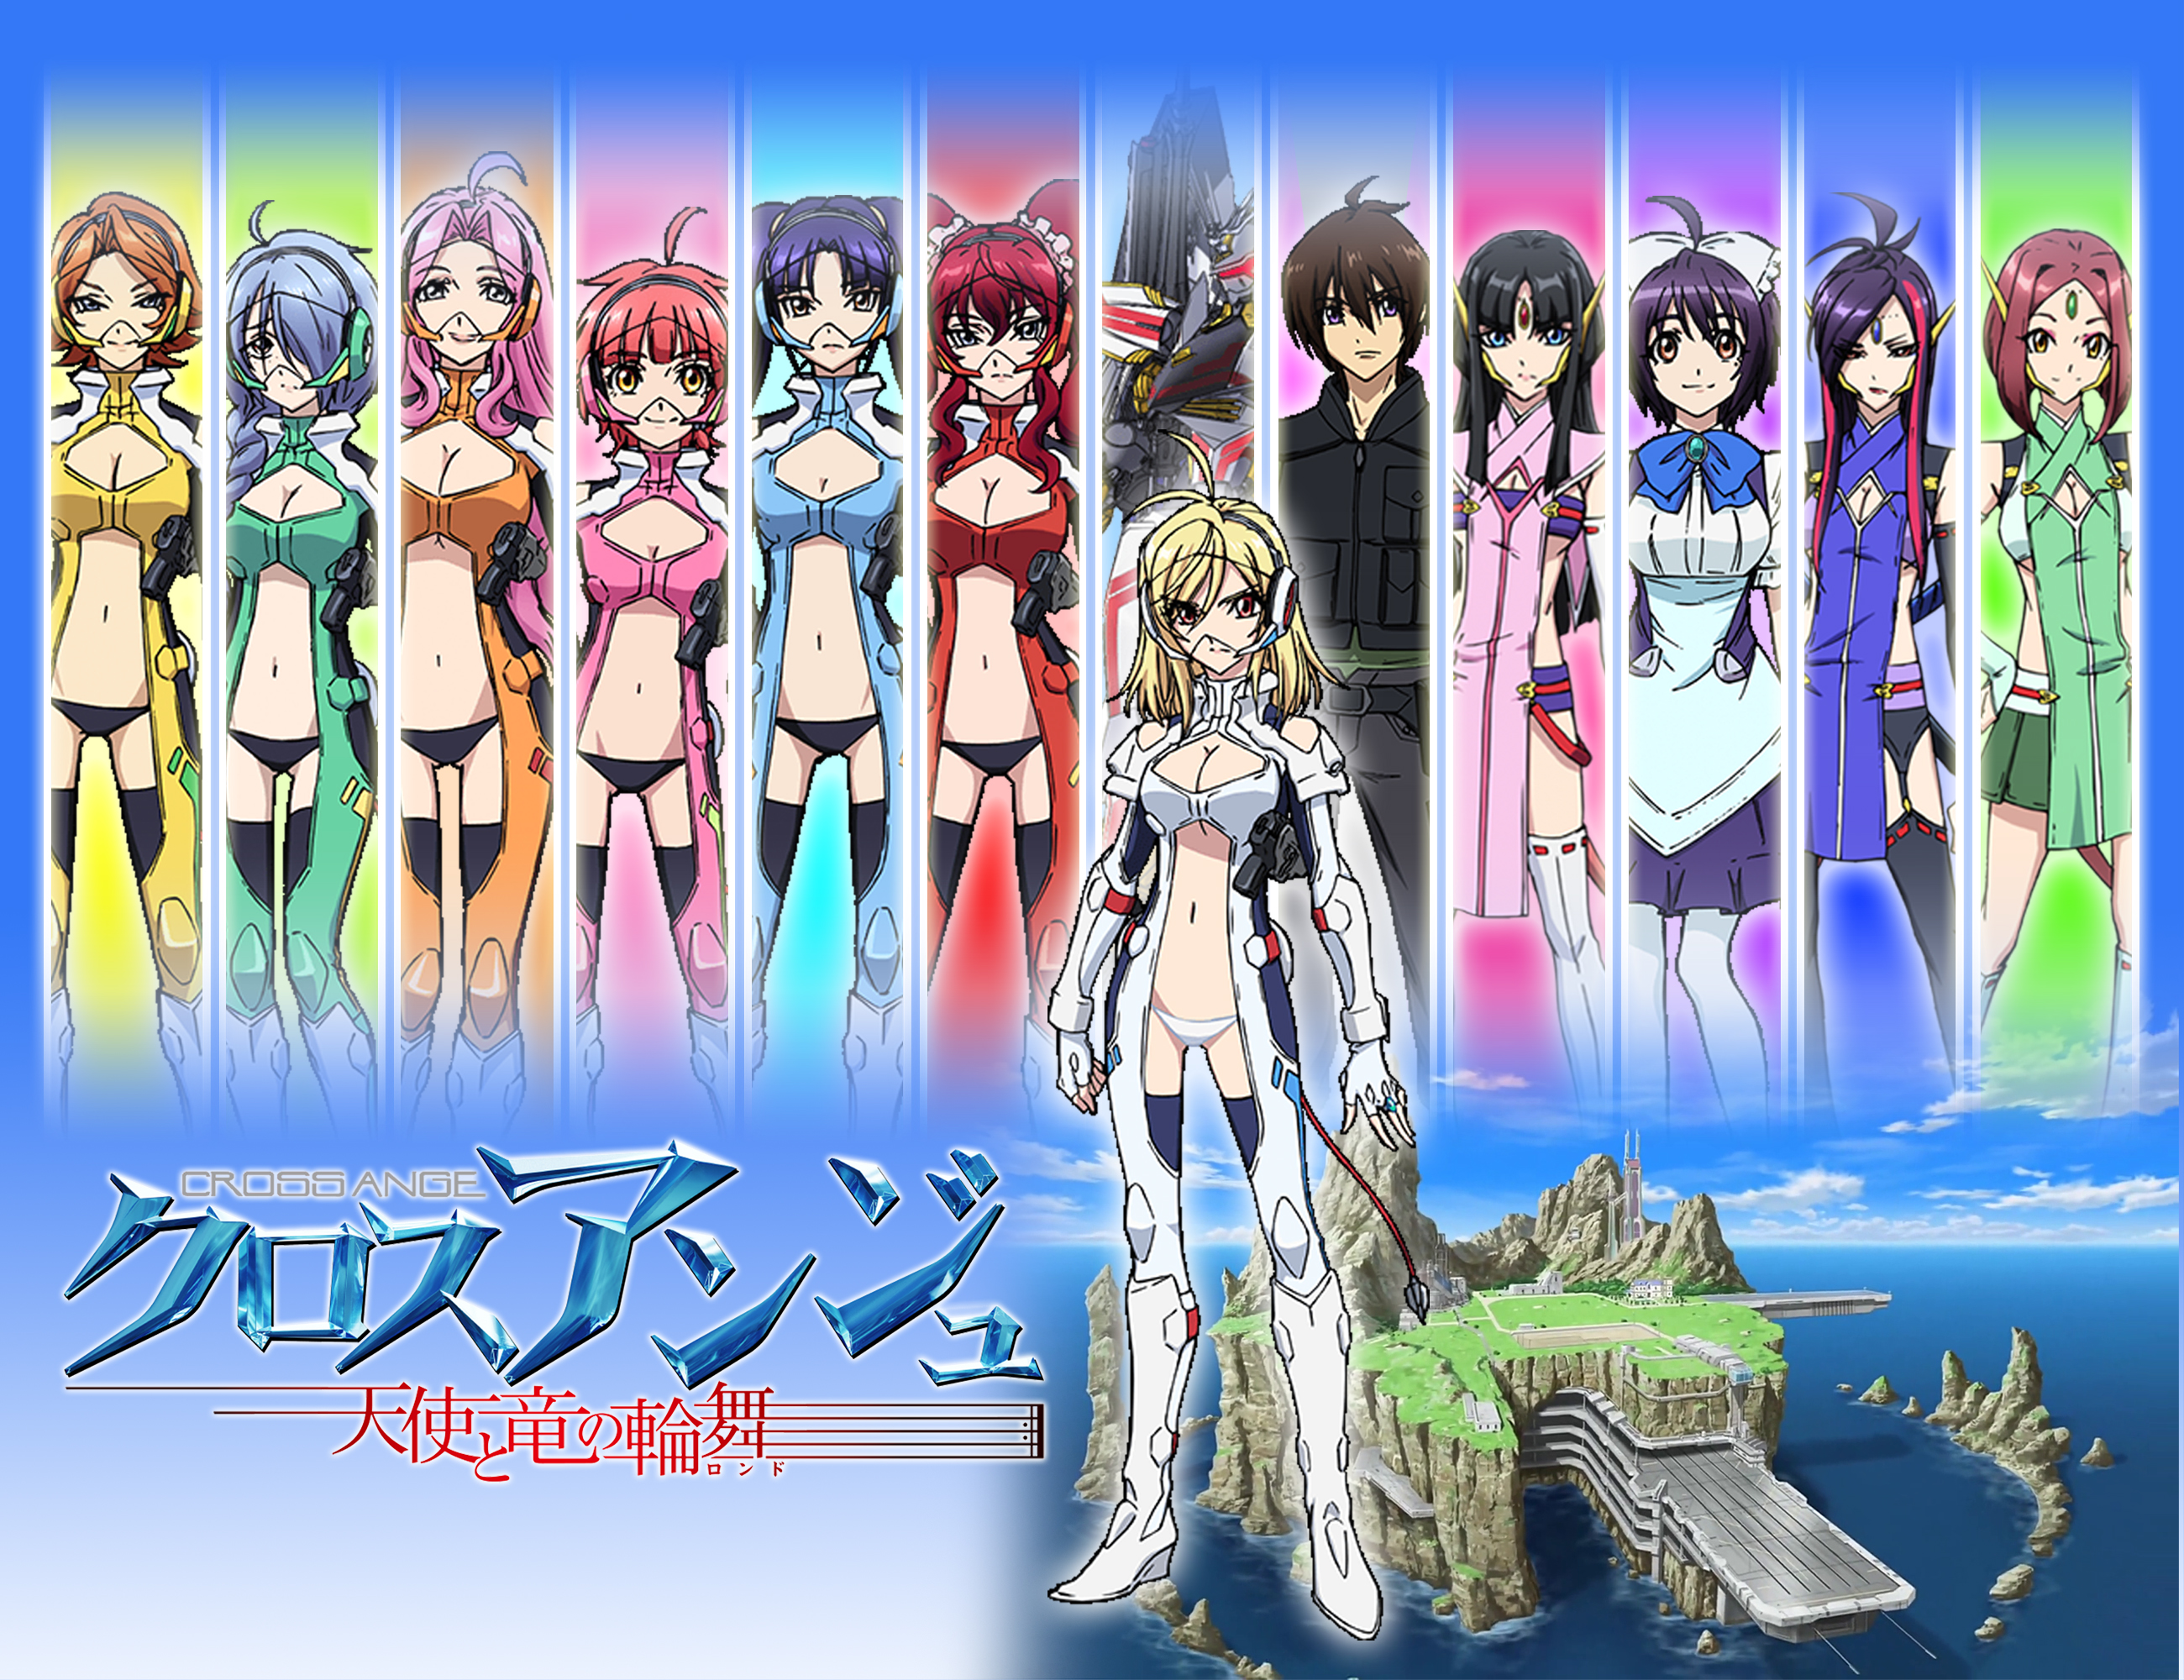 Cross Ange - Wallpaper (Ver 1) by alexartchanimte7 on DeviantArt